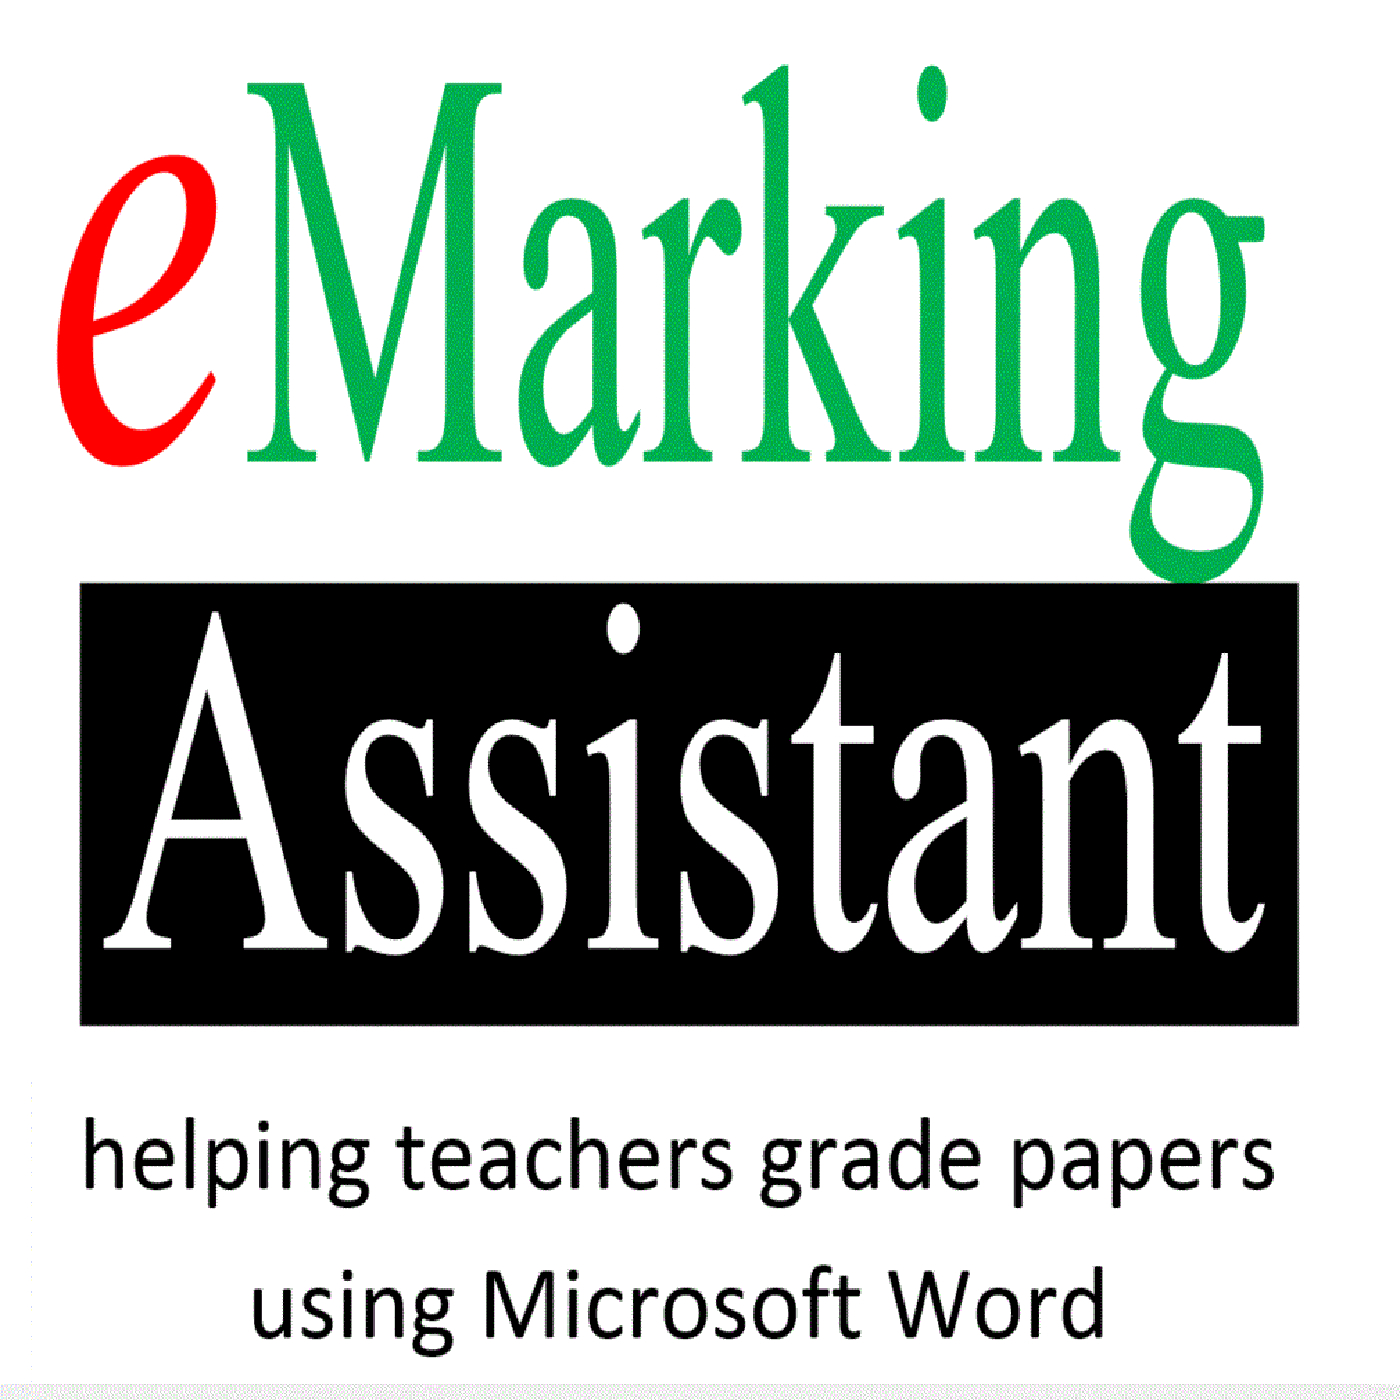 eMarking Assistant podcast